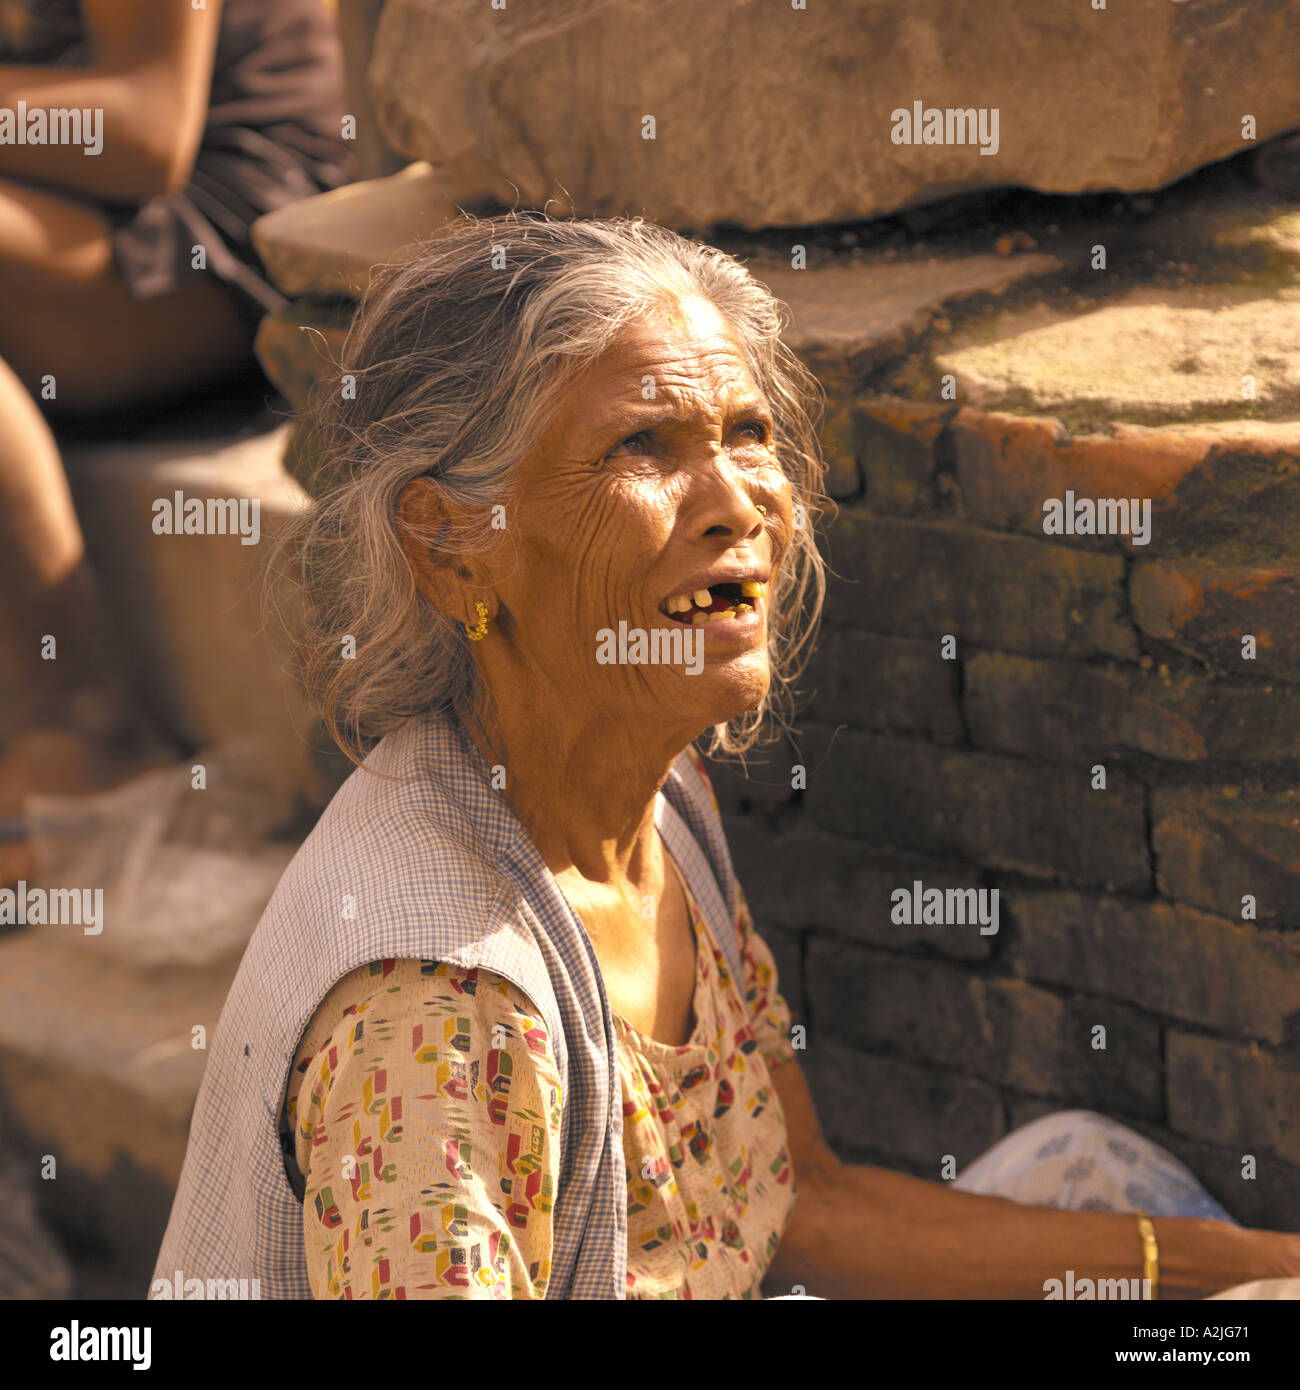 woman age 50+ begging in India. Stock Photo